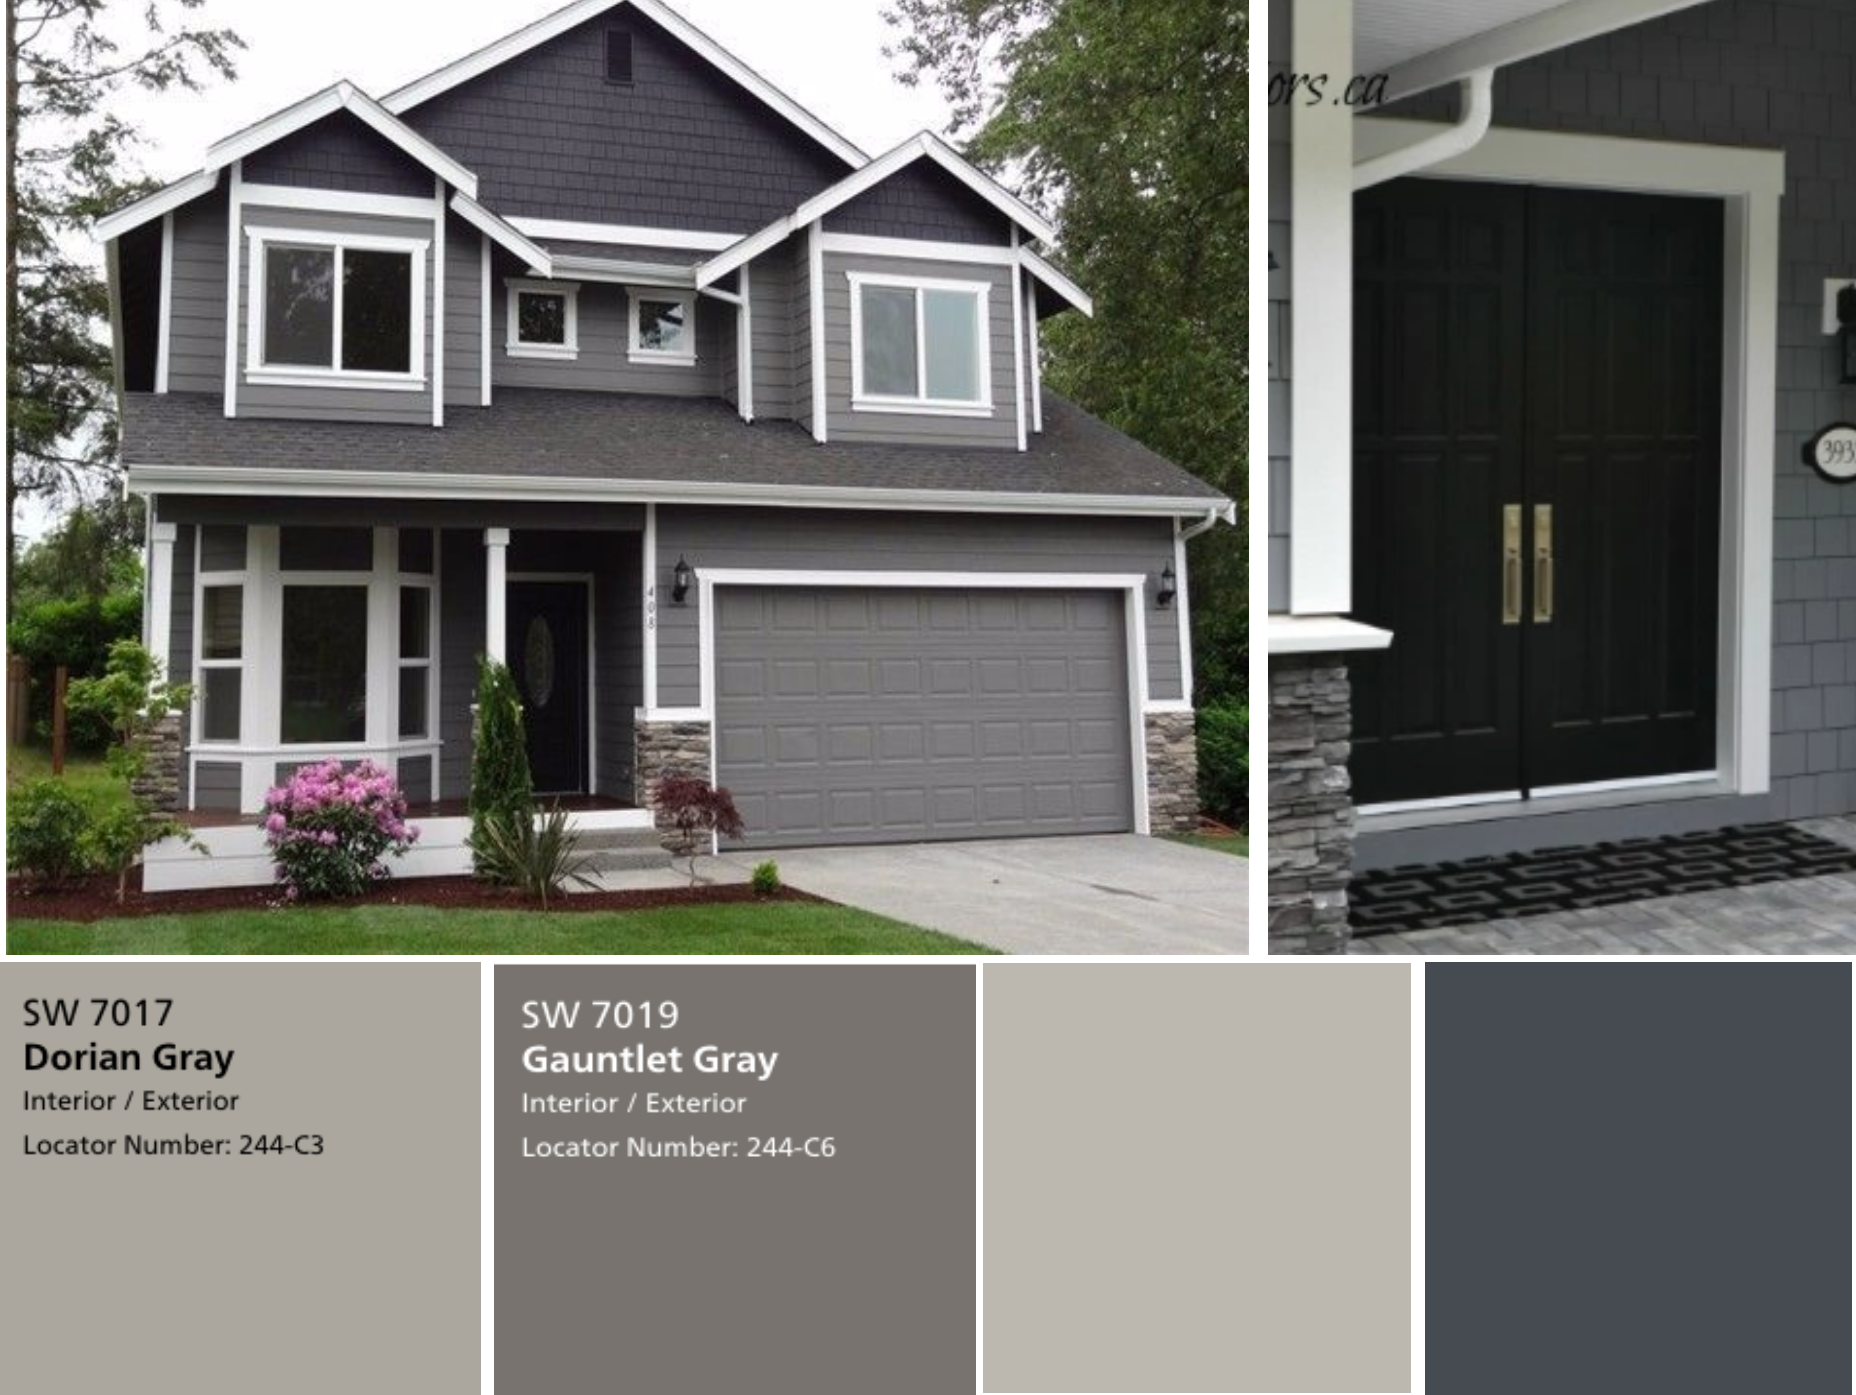 We Have The Exterior Painted Already With Sherwin Williams Dorian Gray For The Siding And